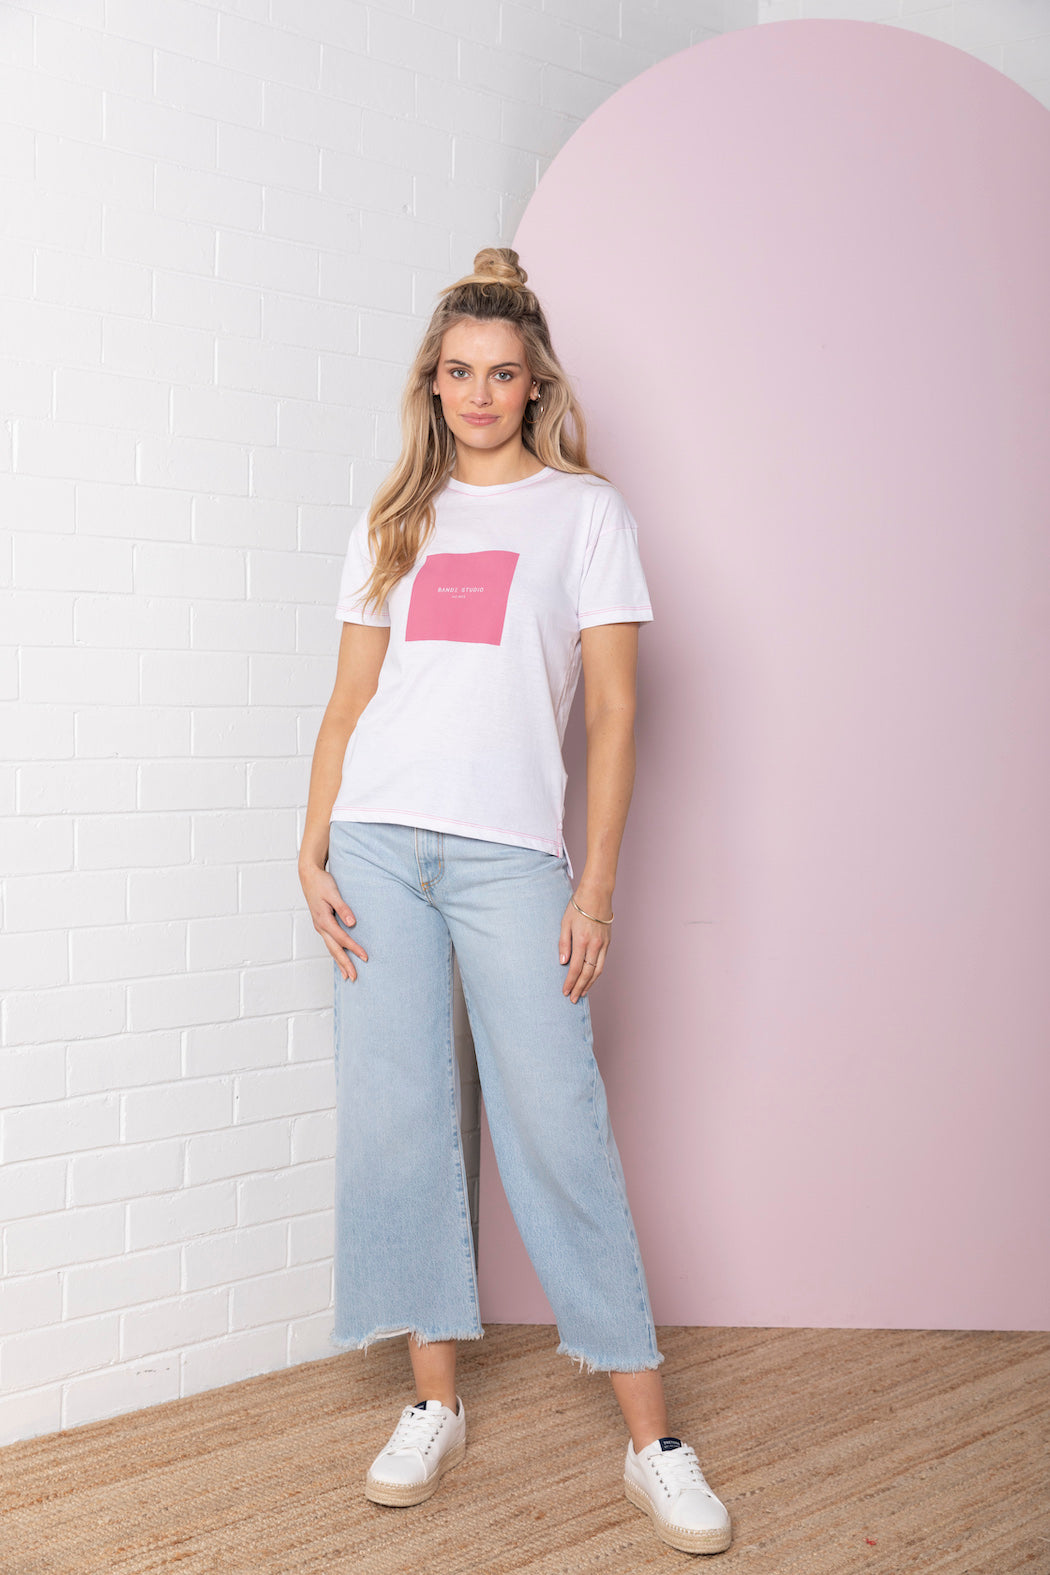 Square Logo T-shirt - white with hot pink